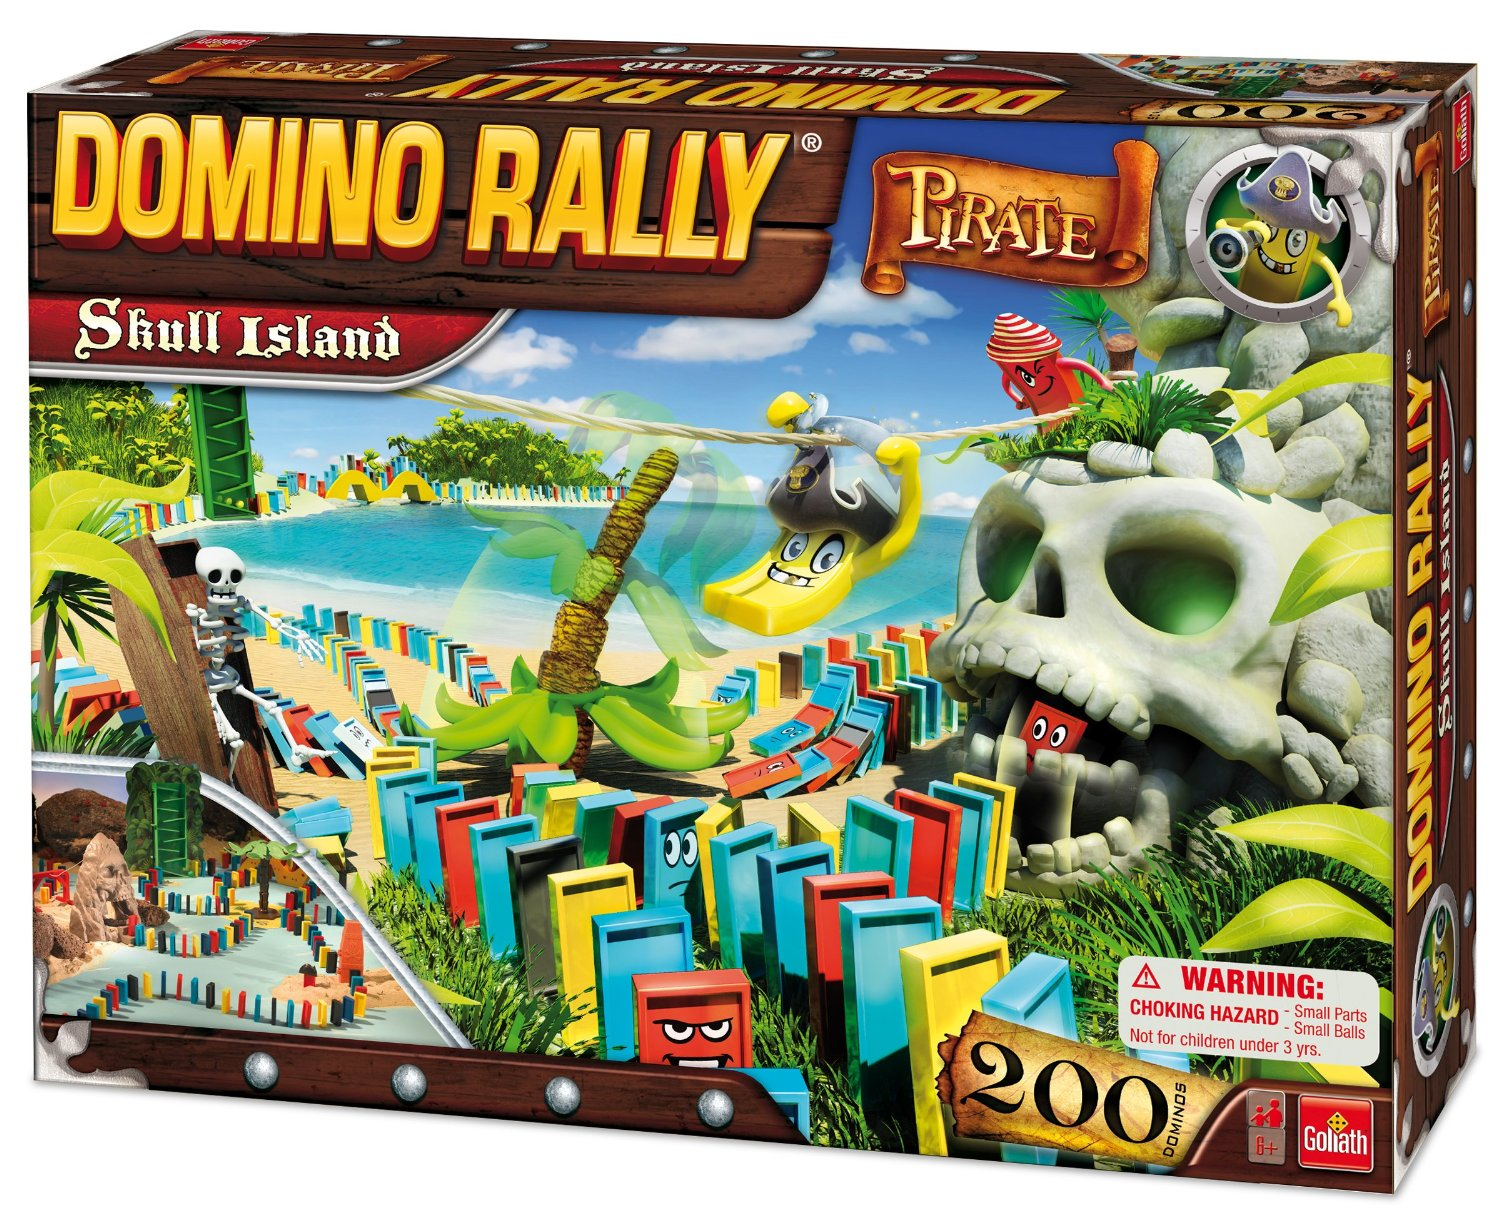 Domino Rally Pirate Skull Island Set